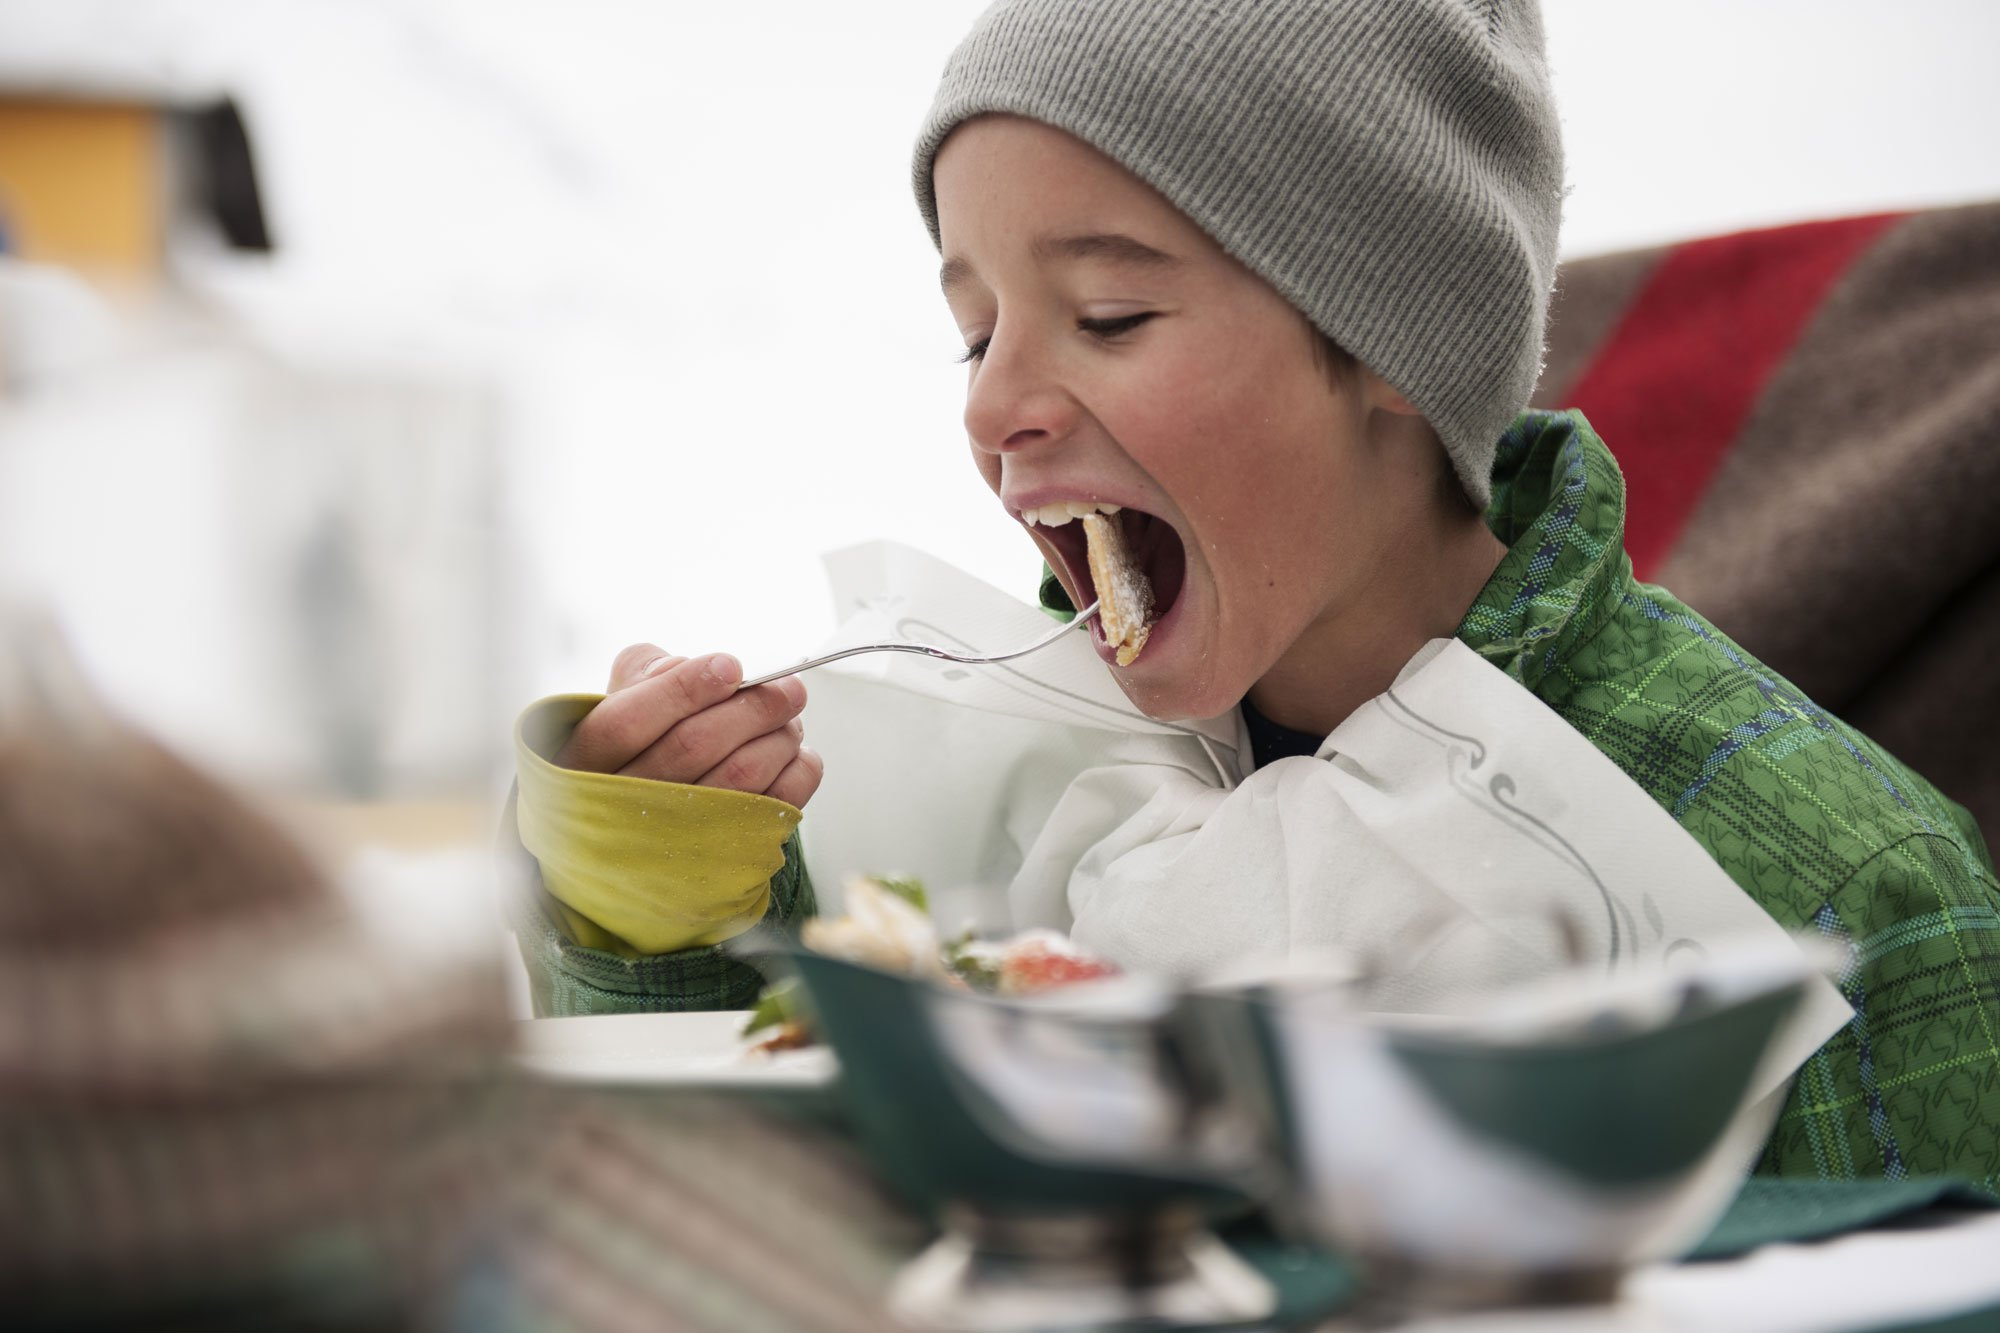 Skiing makes hungry. A young winter sportsmen enjoys his